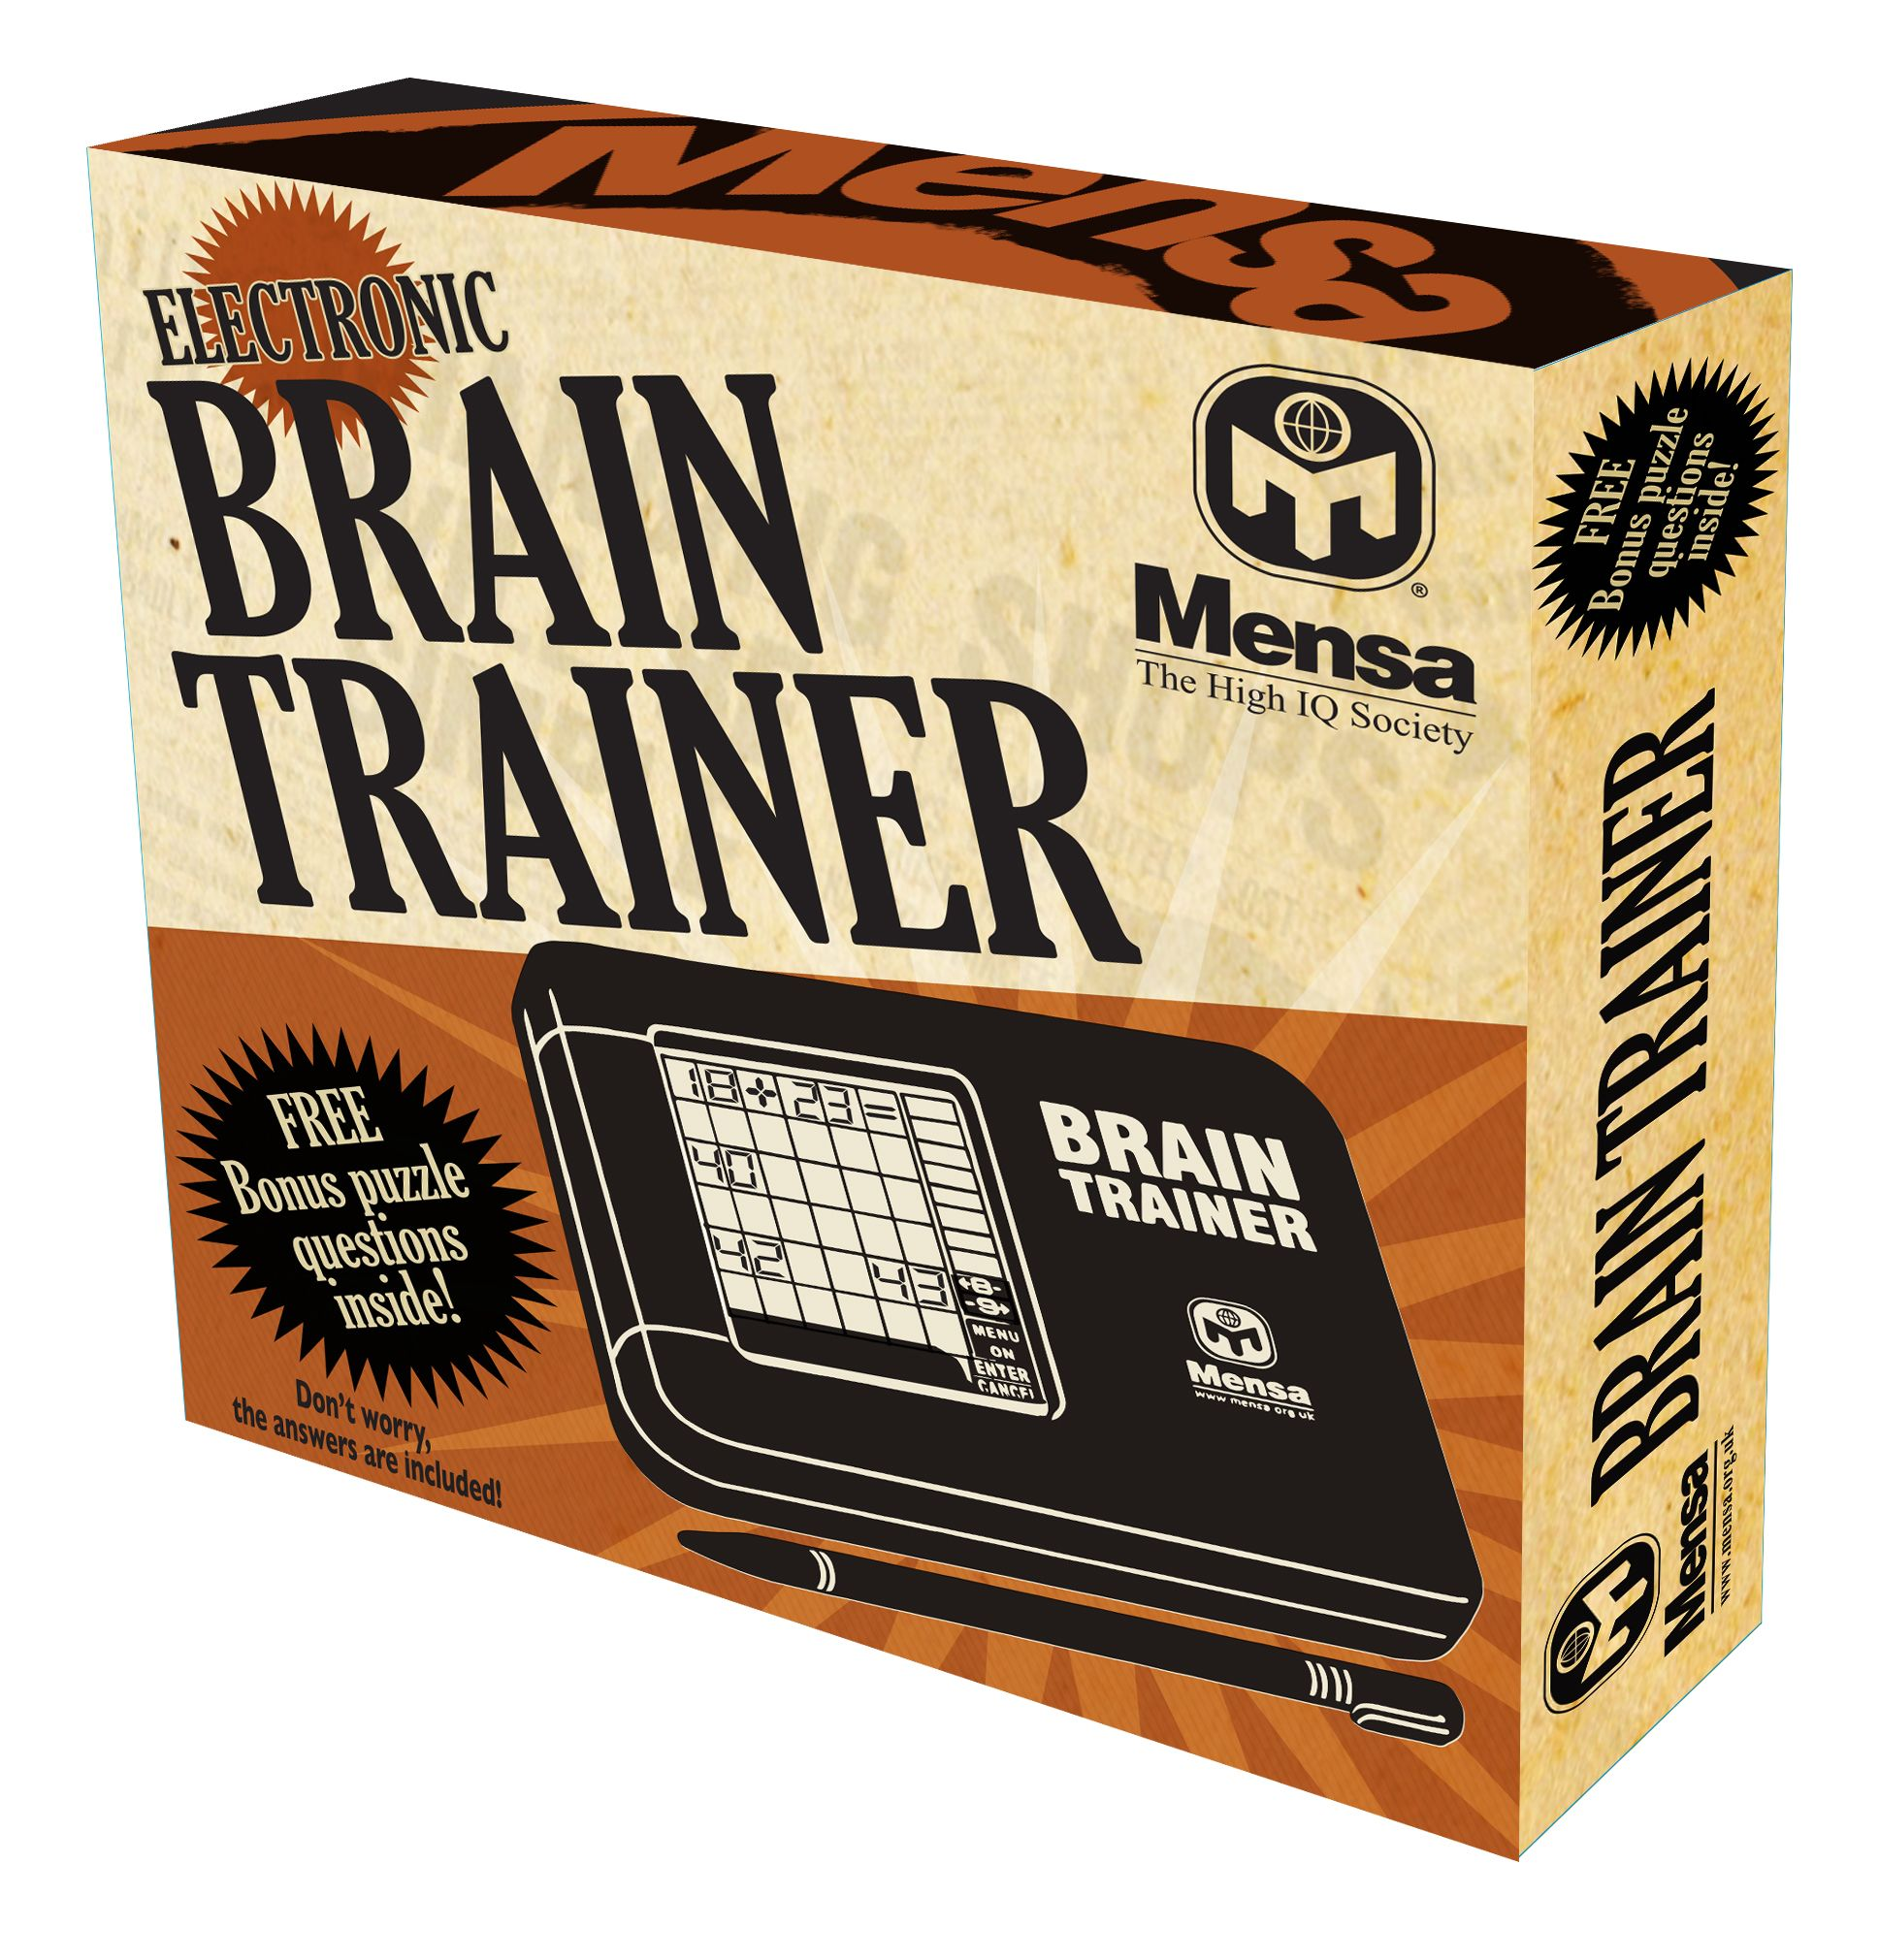 Mensa brain trainer